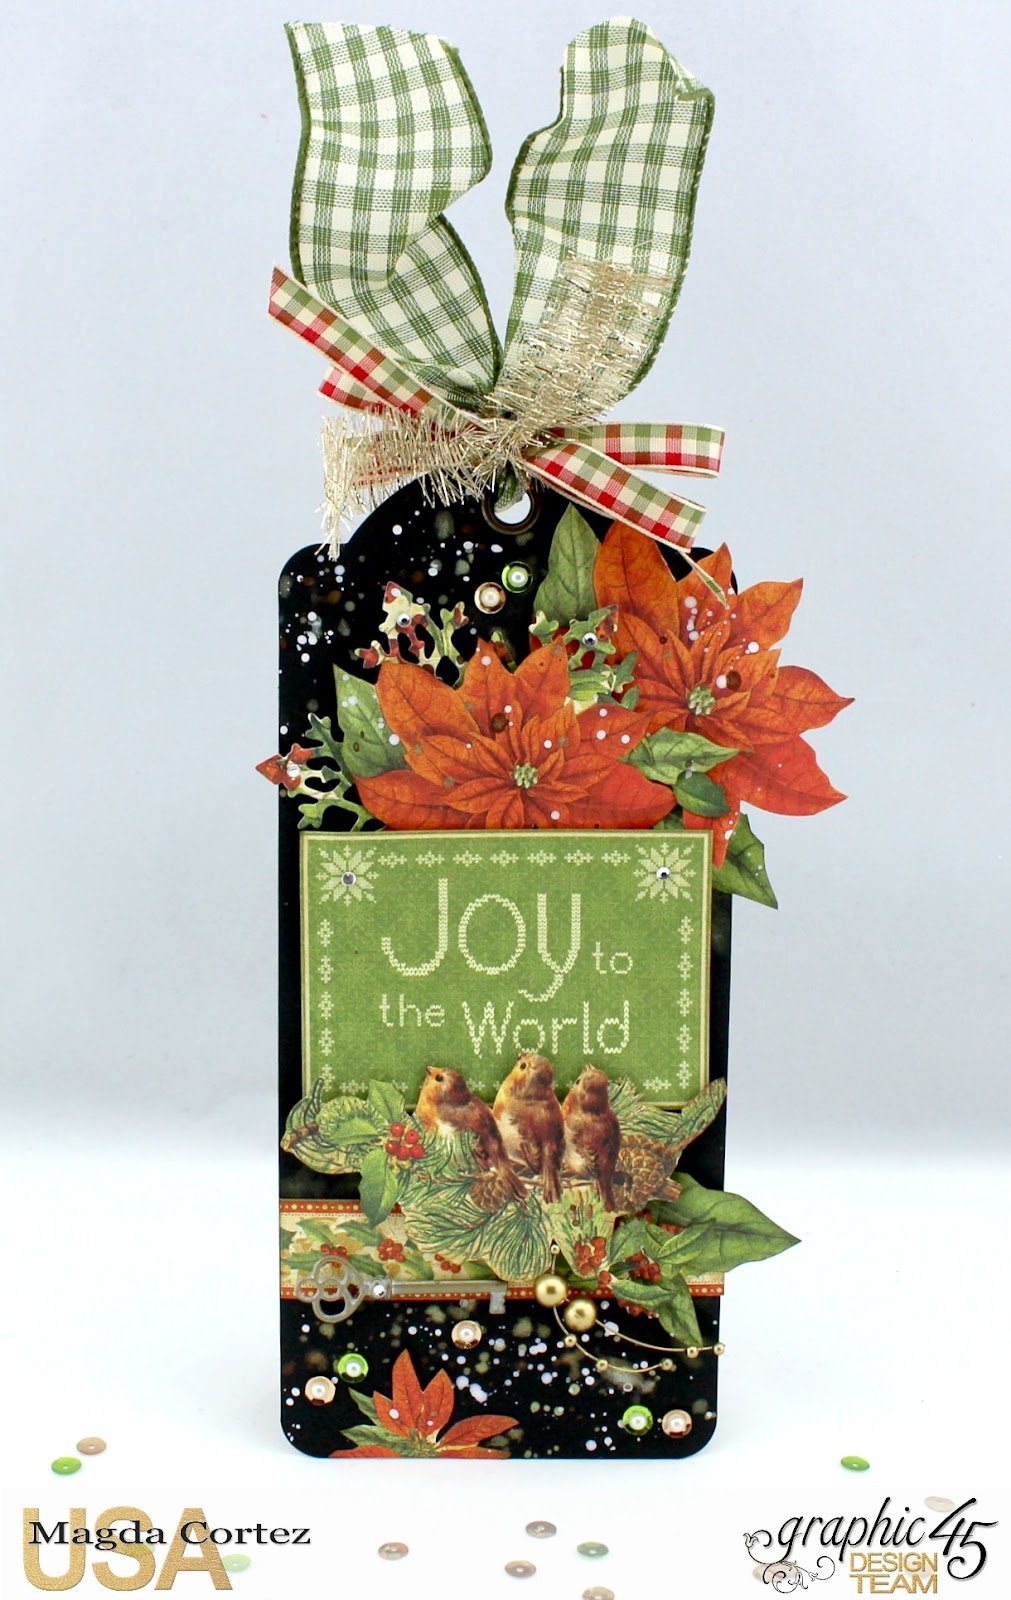 Joy Set of Tags, Winter Wonderland, By Magda Cortez, Product by Graphic 45, Photo 03 of 09.jpg